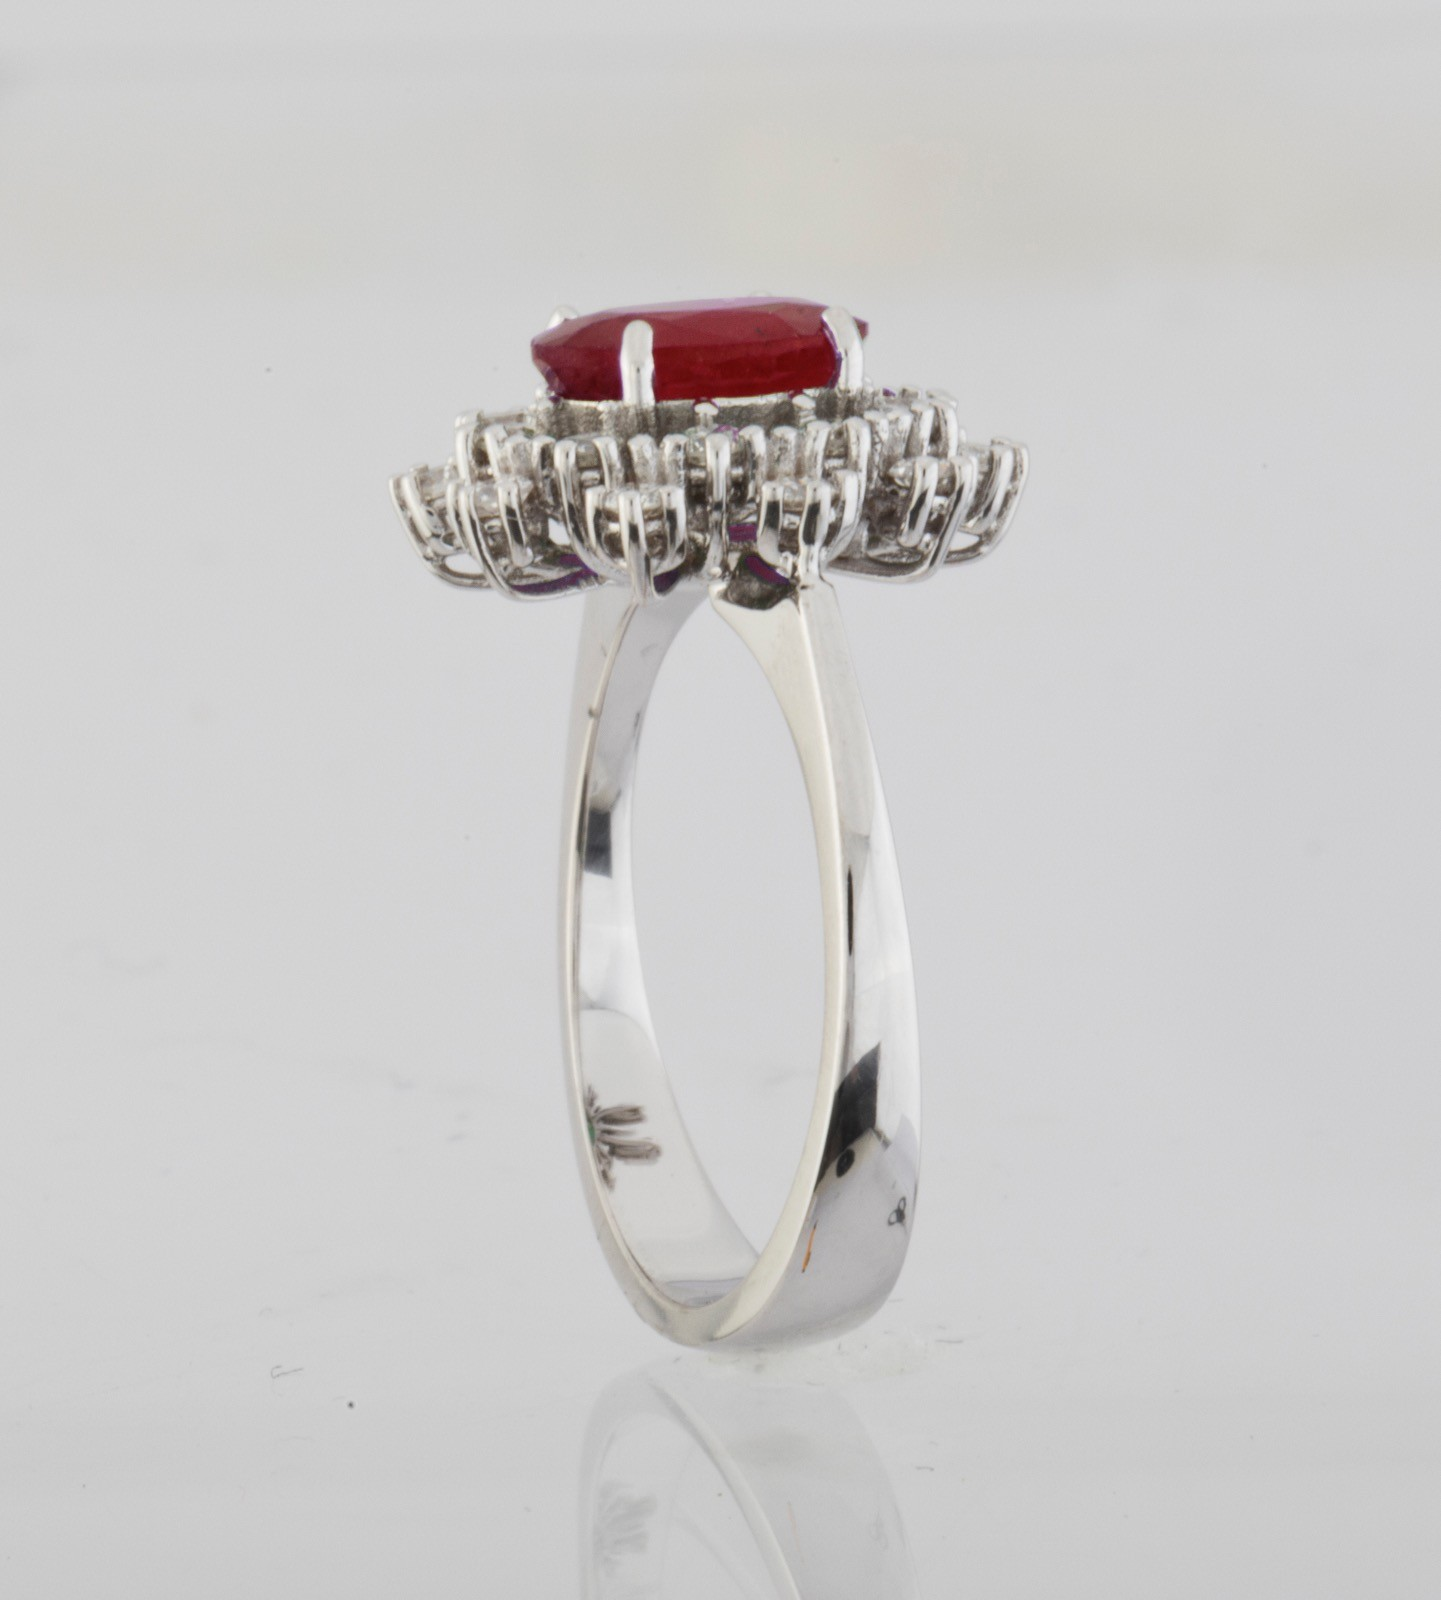 18K White Gold Ruby Cluster Ring Total 1.45 Ct. - Image 4 of 4